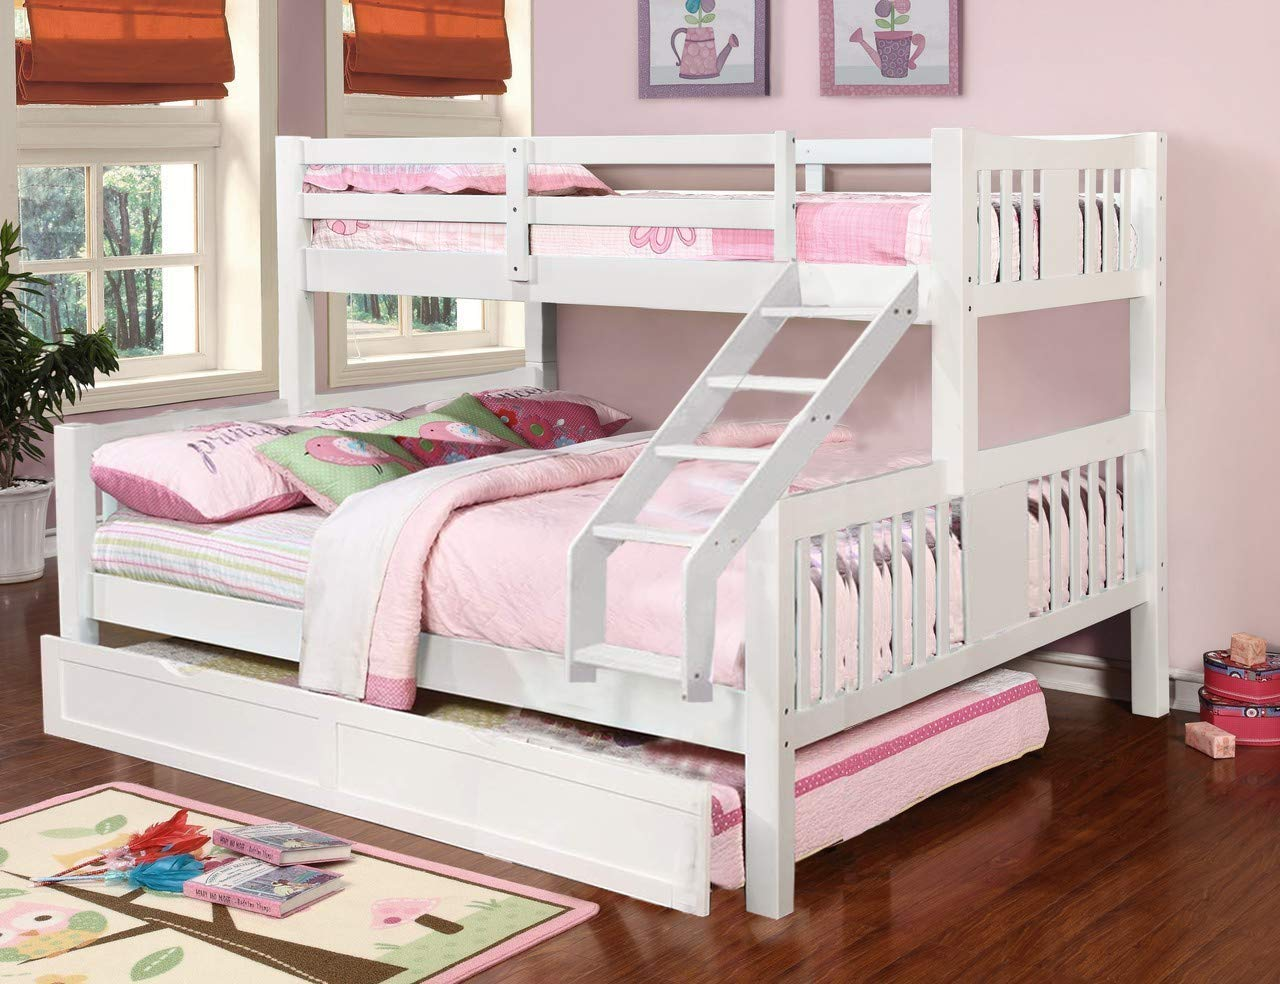 Aprodz Ashmo White Twin Over Queen Bunk Bed With Trundle Buy Online In Guatemala At Guatemala Desertcart Com Productid 177956747